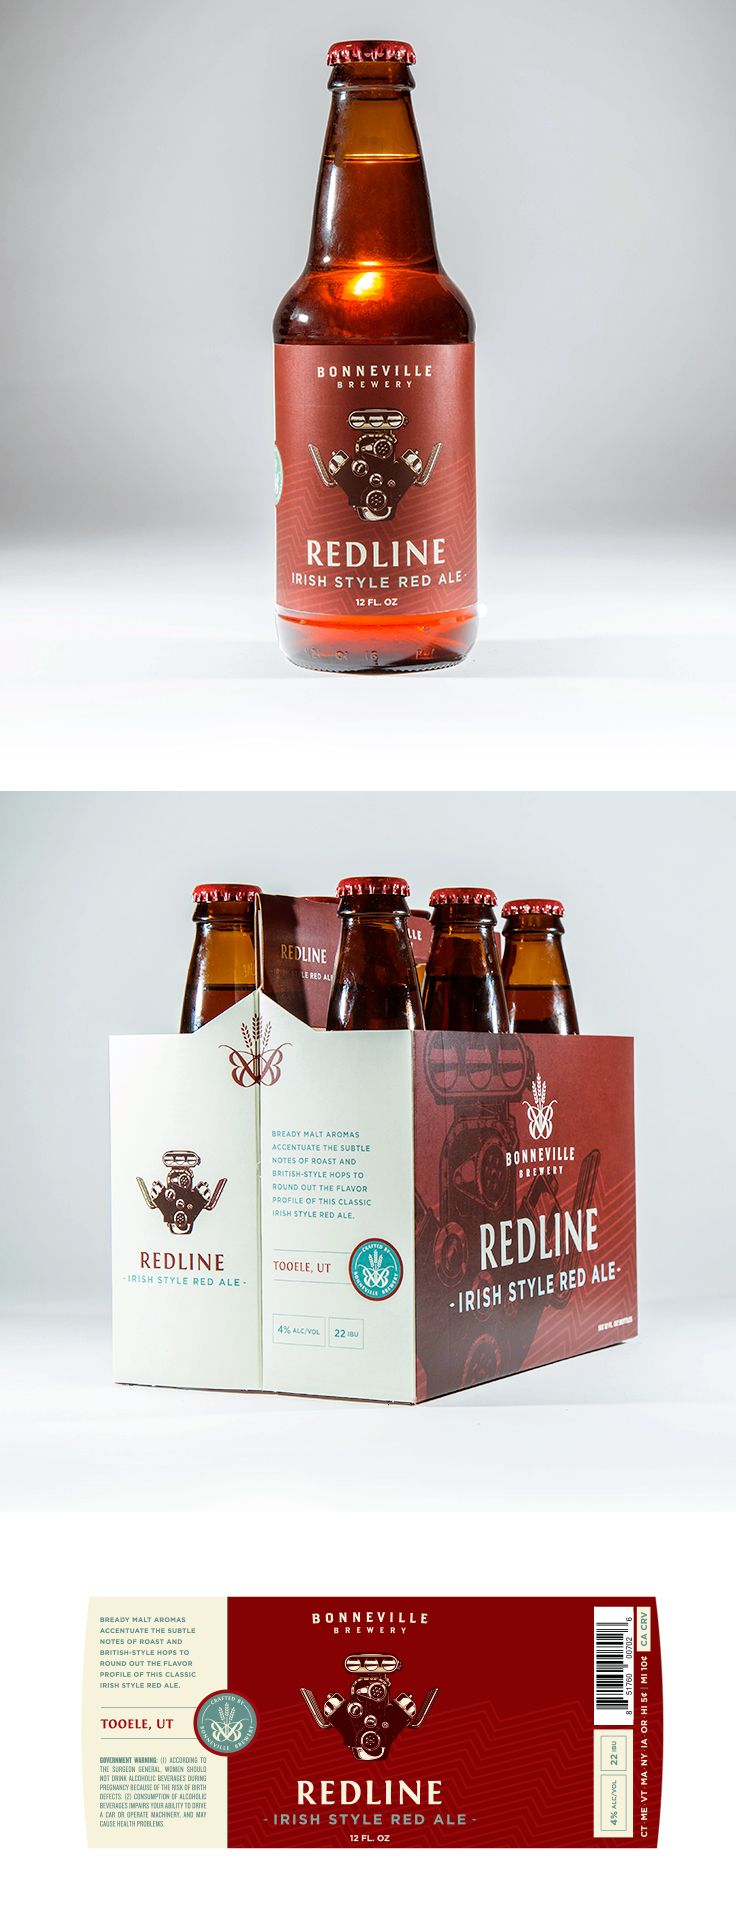 Redline Label and Box design by Epic Marketing for Bonneville Brewery. #packagingdesing #graphicdesing #labeldesign #beer #beerlabel